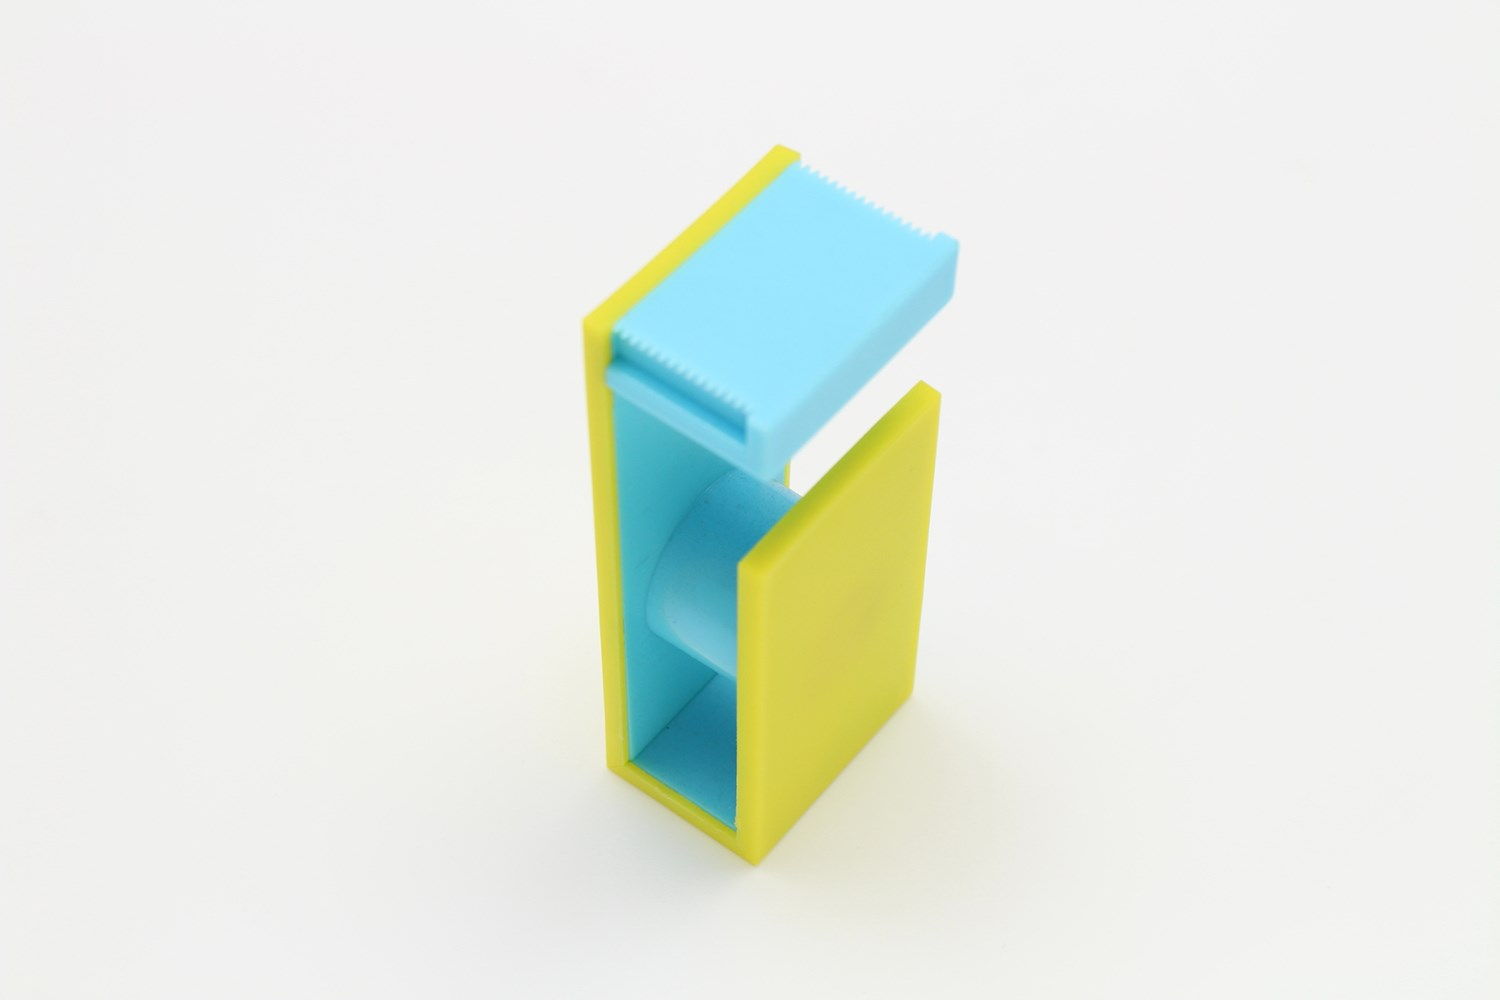 mt-washi-masking-tape-two-tone-cutter-yellow-x-light-blue-MTTC0022-1.jpg